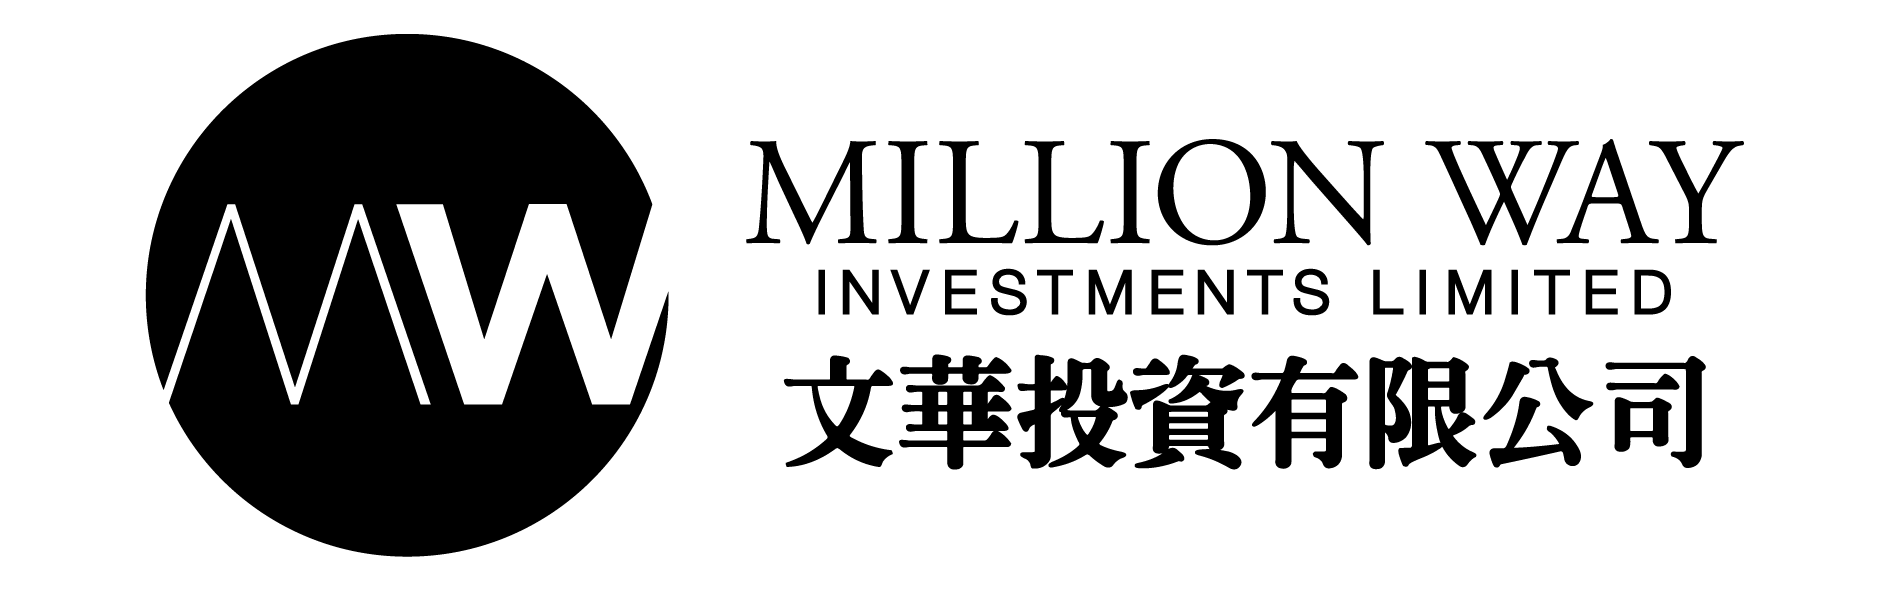 Million Way Investment Limited 文華投資有限公司